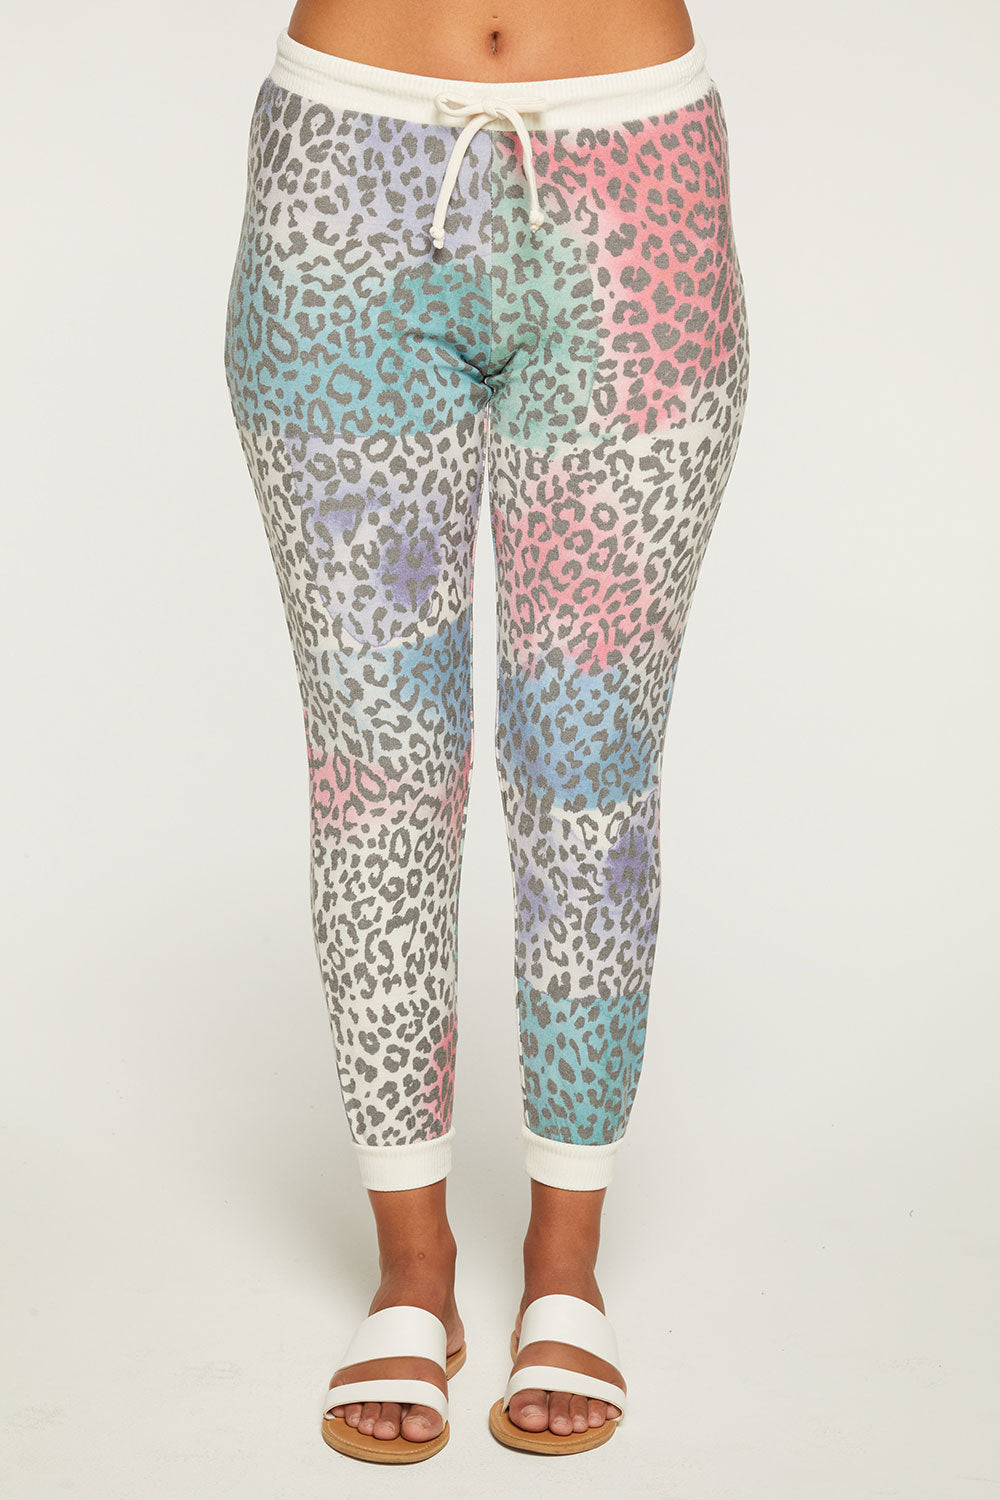 Painted Leopard Pants WOMENS chaserbrand4.myshopify.com